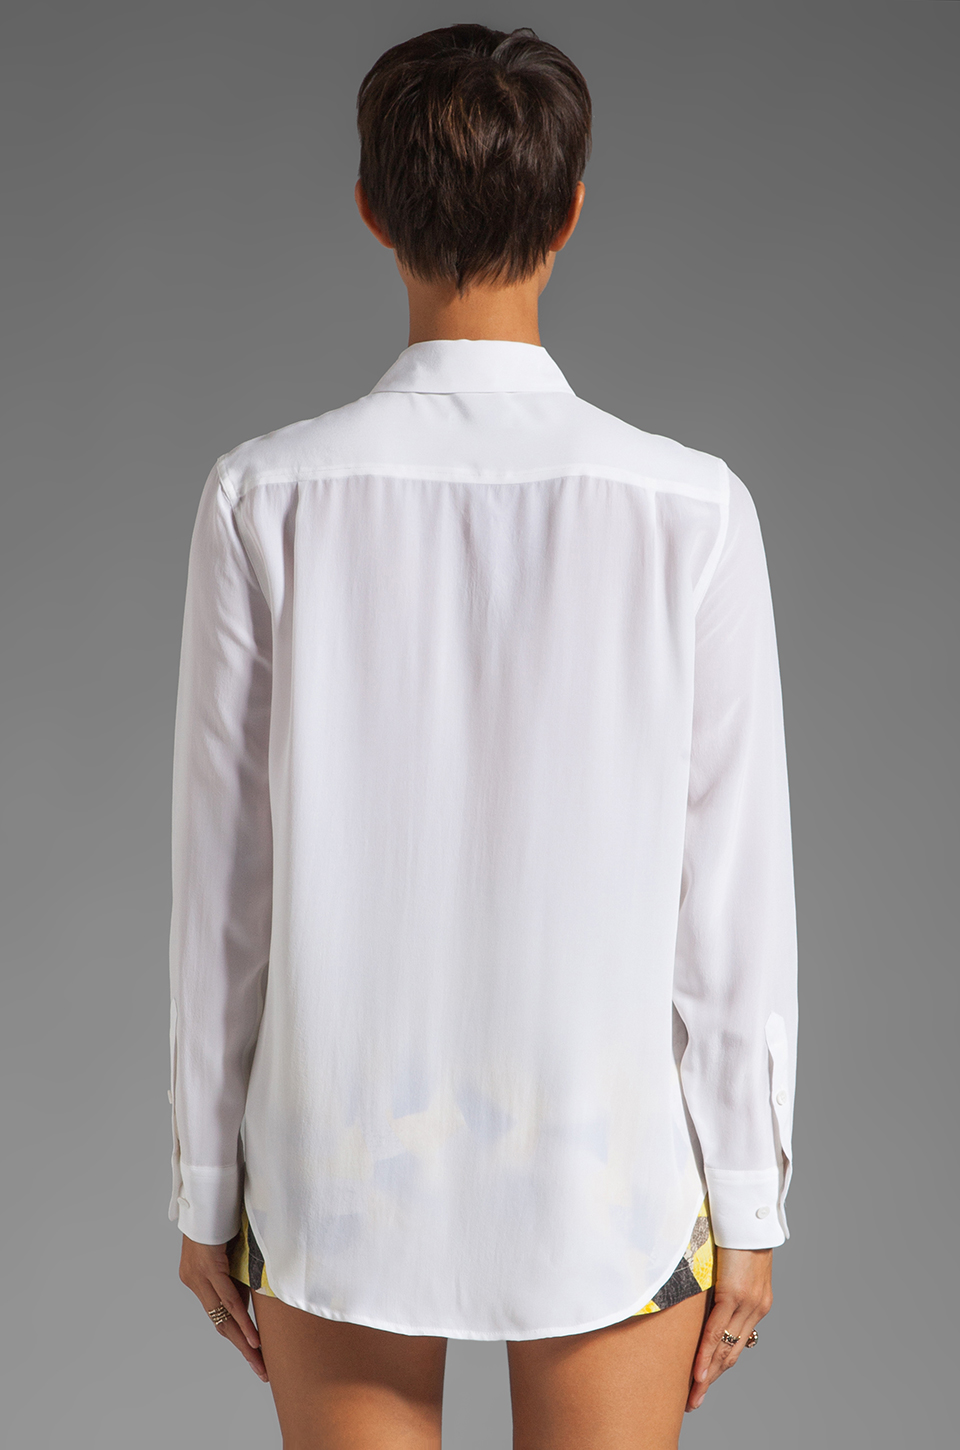 Equipment Reese Blouse in Bright White